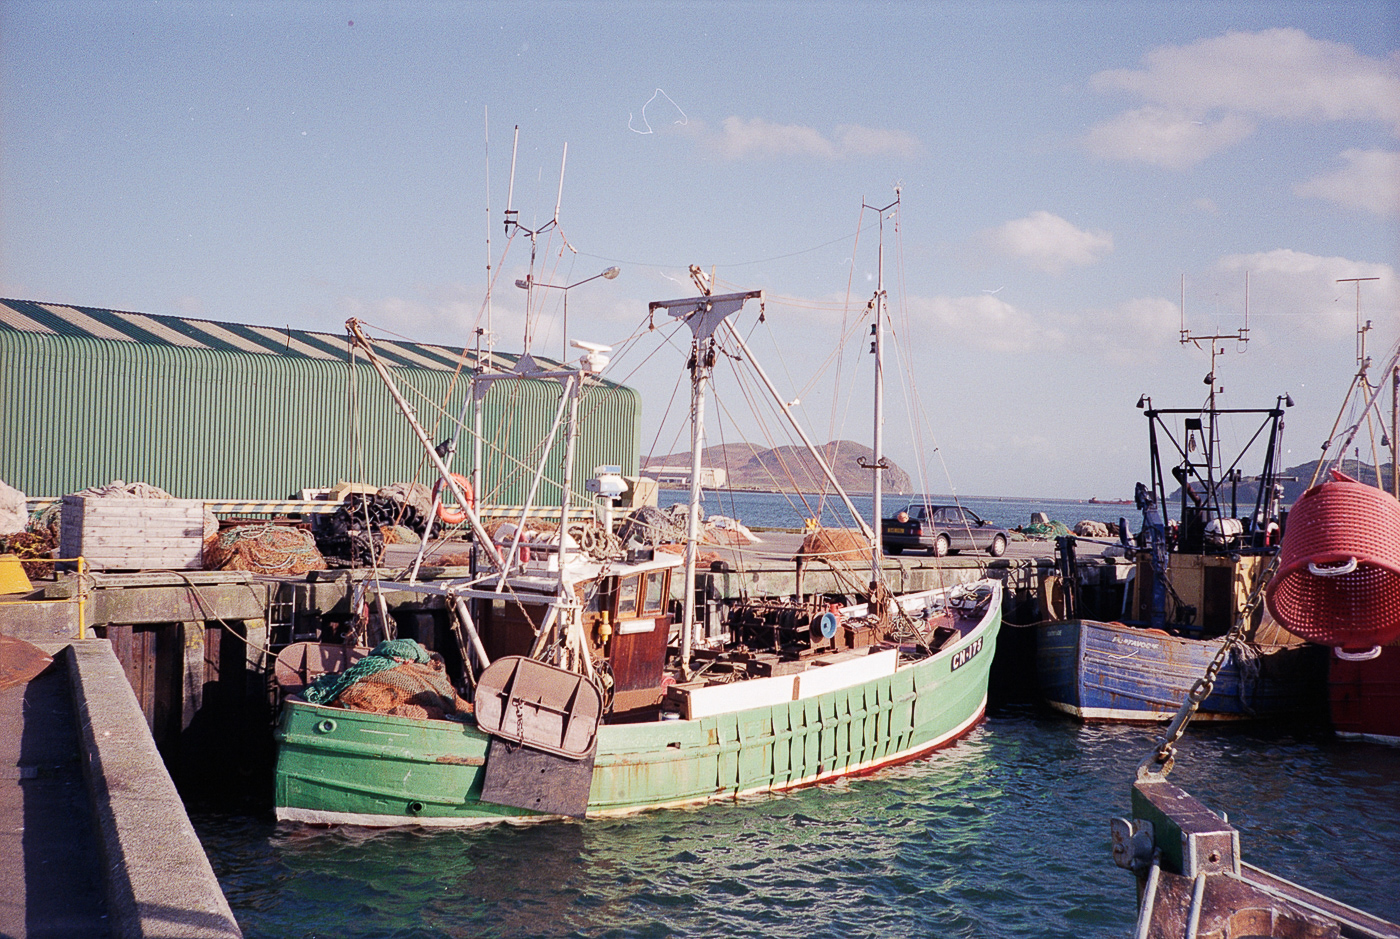 Dual purpose ringnetter, trawler, and scalloper 'Silver Lining', CN75, in harbour, Campbeltown, 14th October 1990. She was built in Fairlie for Alan Oman of Carradale in 1950 and was previously registered BA102.